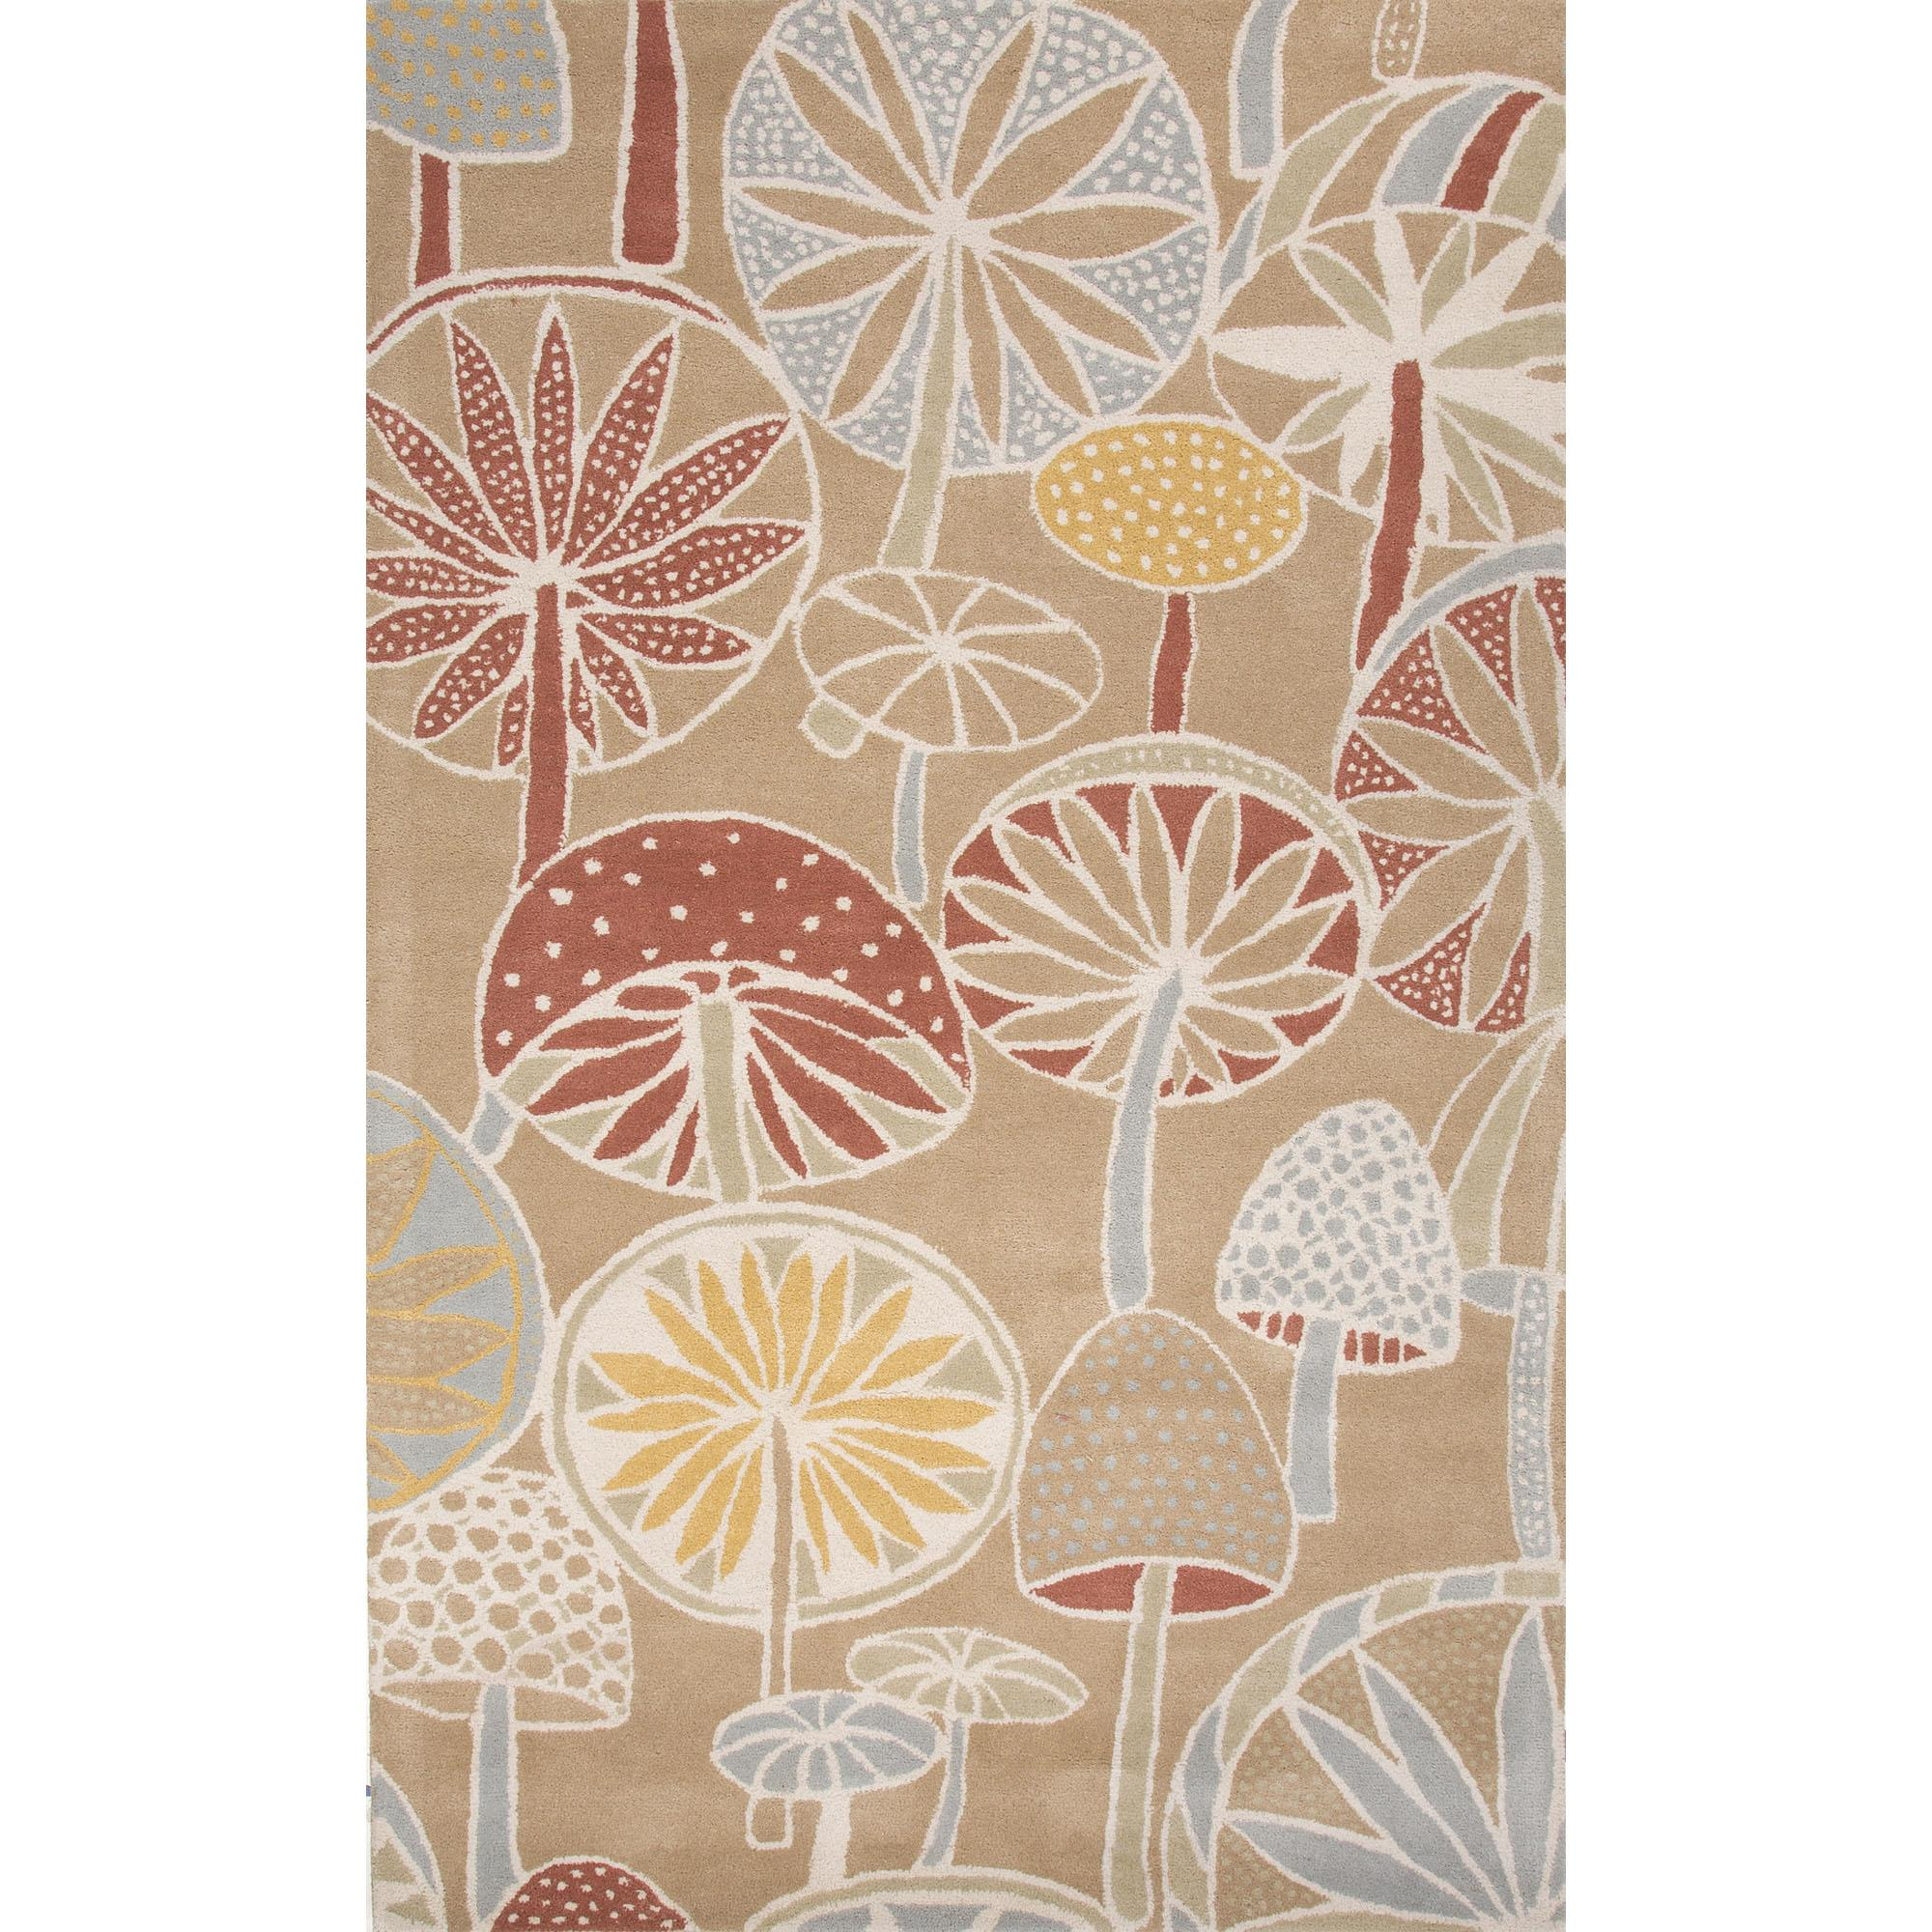 JAIPUR Rugs En Casa By Luli Sanchez Tufted 5 x 8 Rug - Item Number: RUG116041